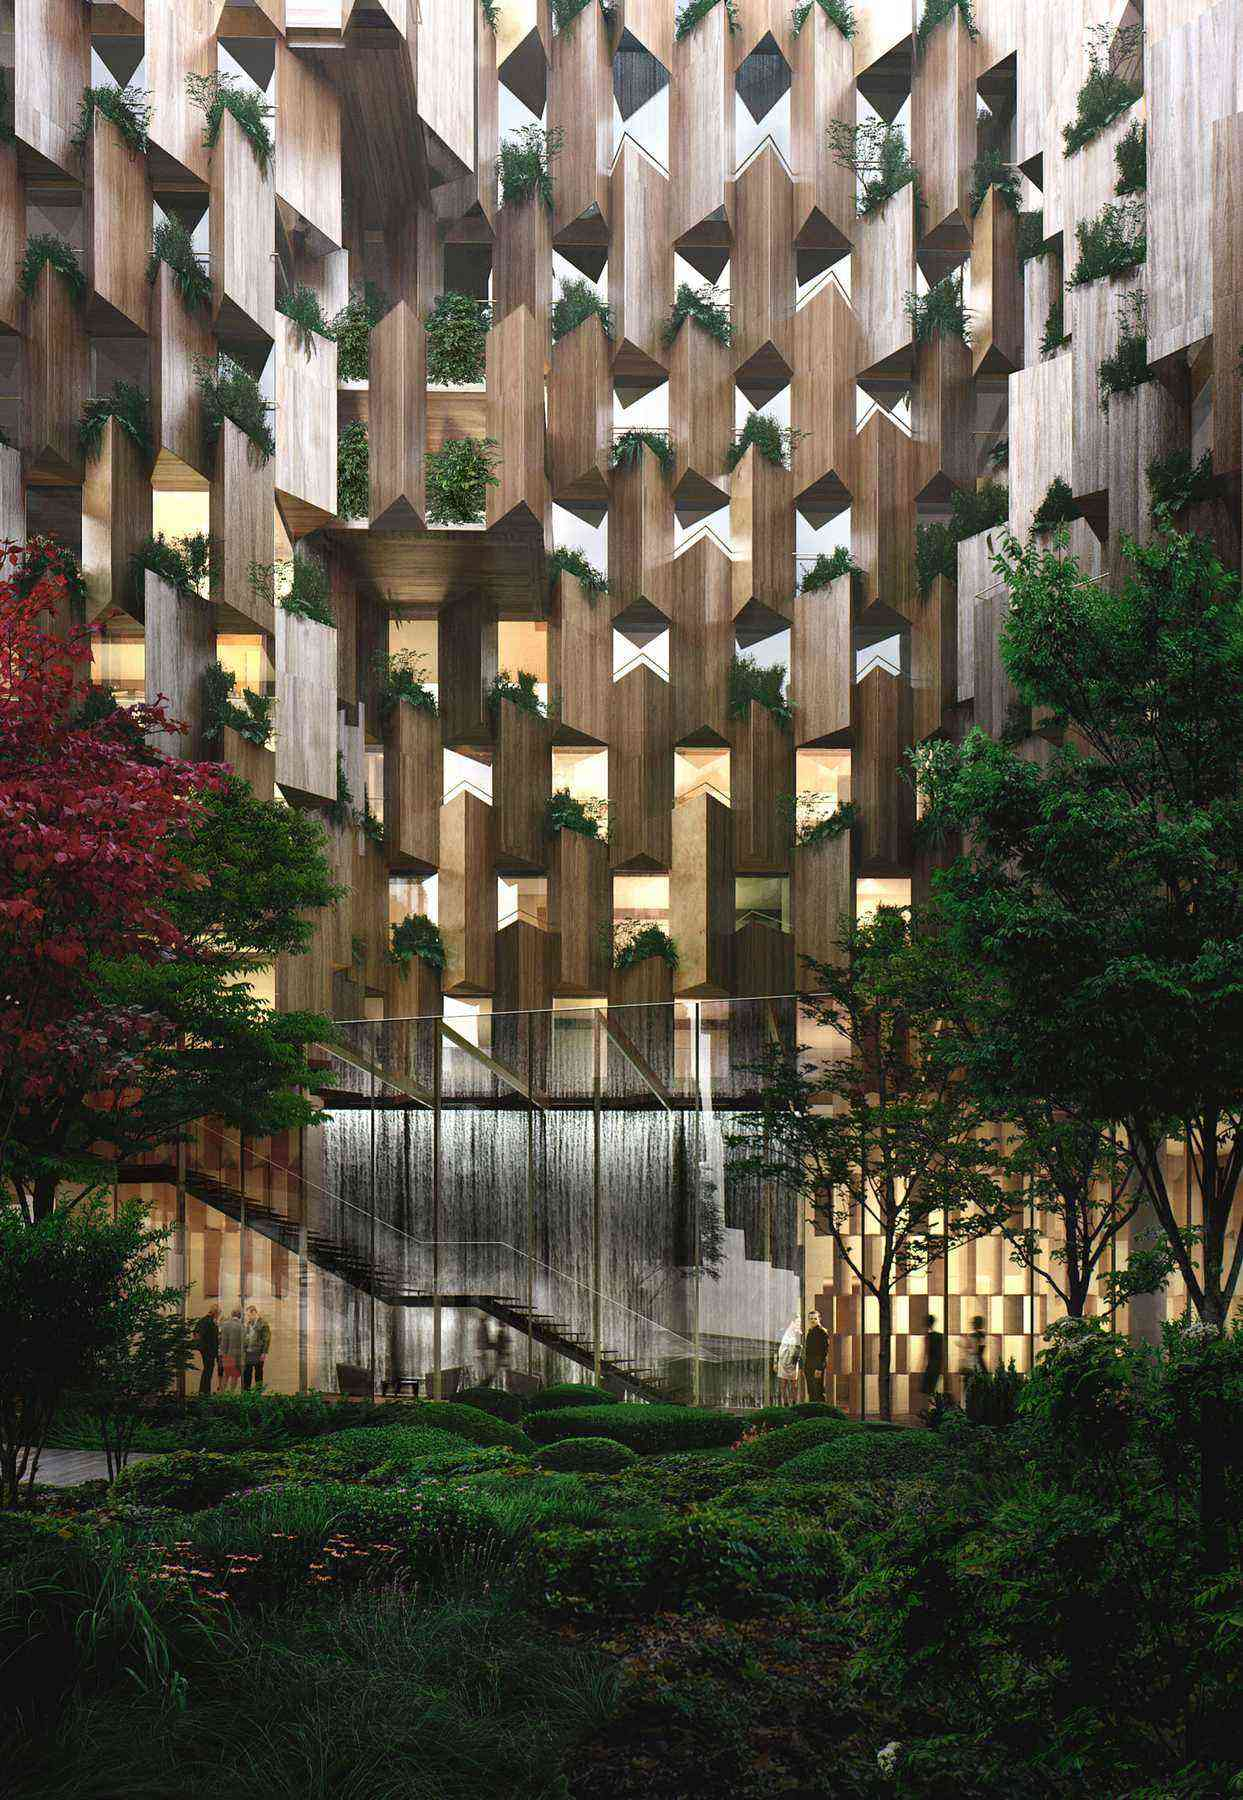 1-hotel-paris-kengo-kuma-associates-france-architecture-_dezeen_2364_col_12